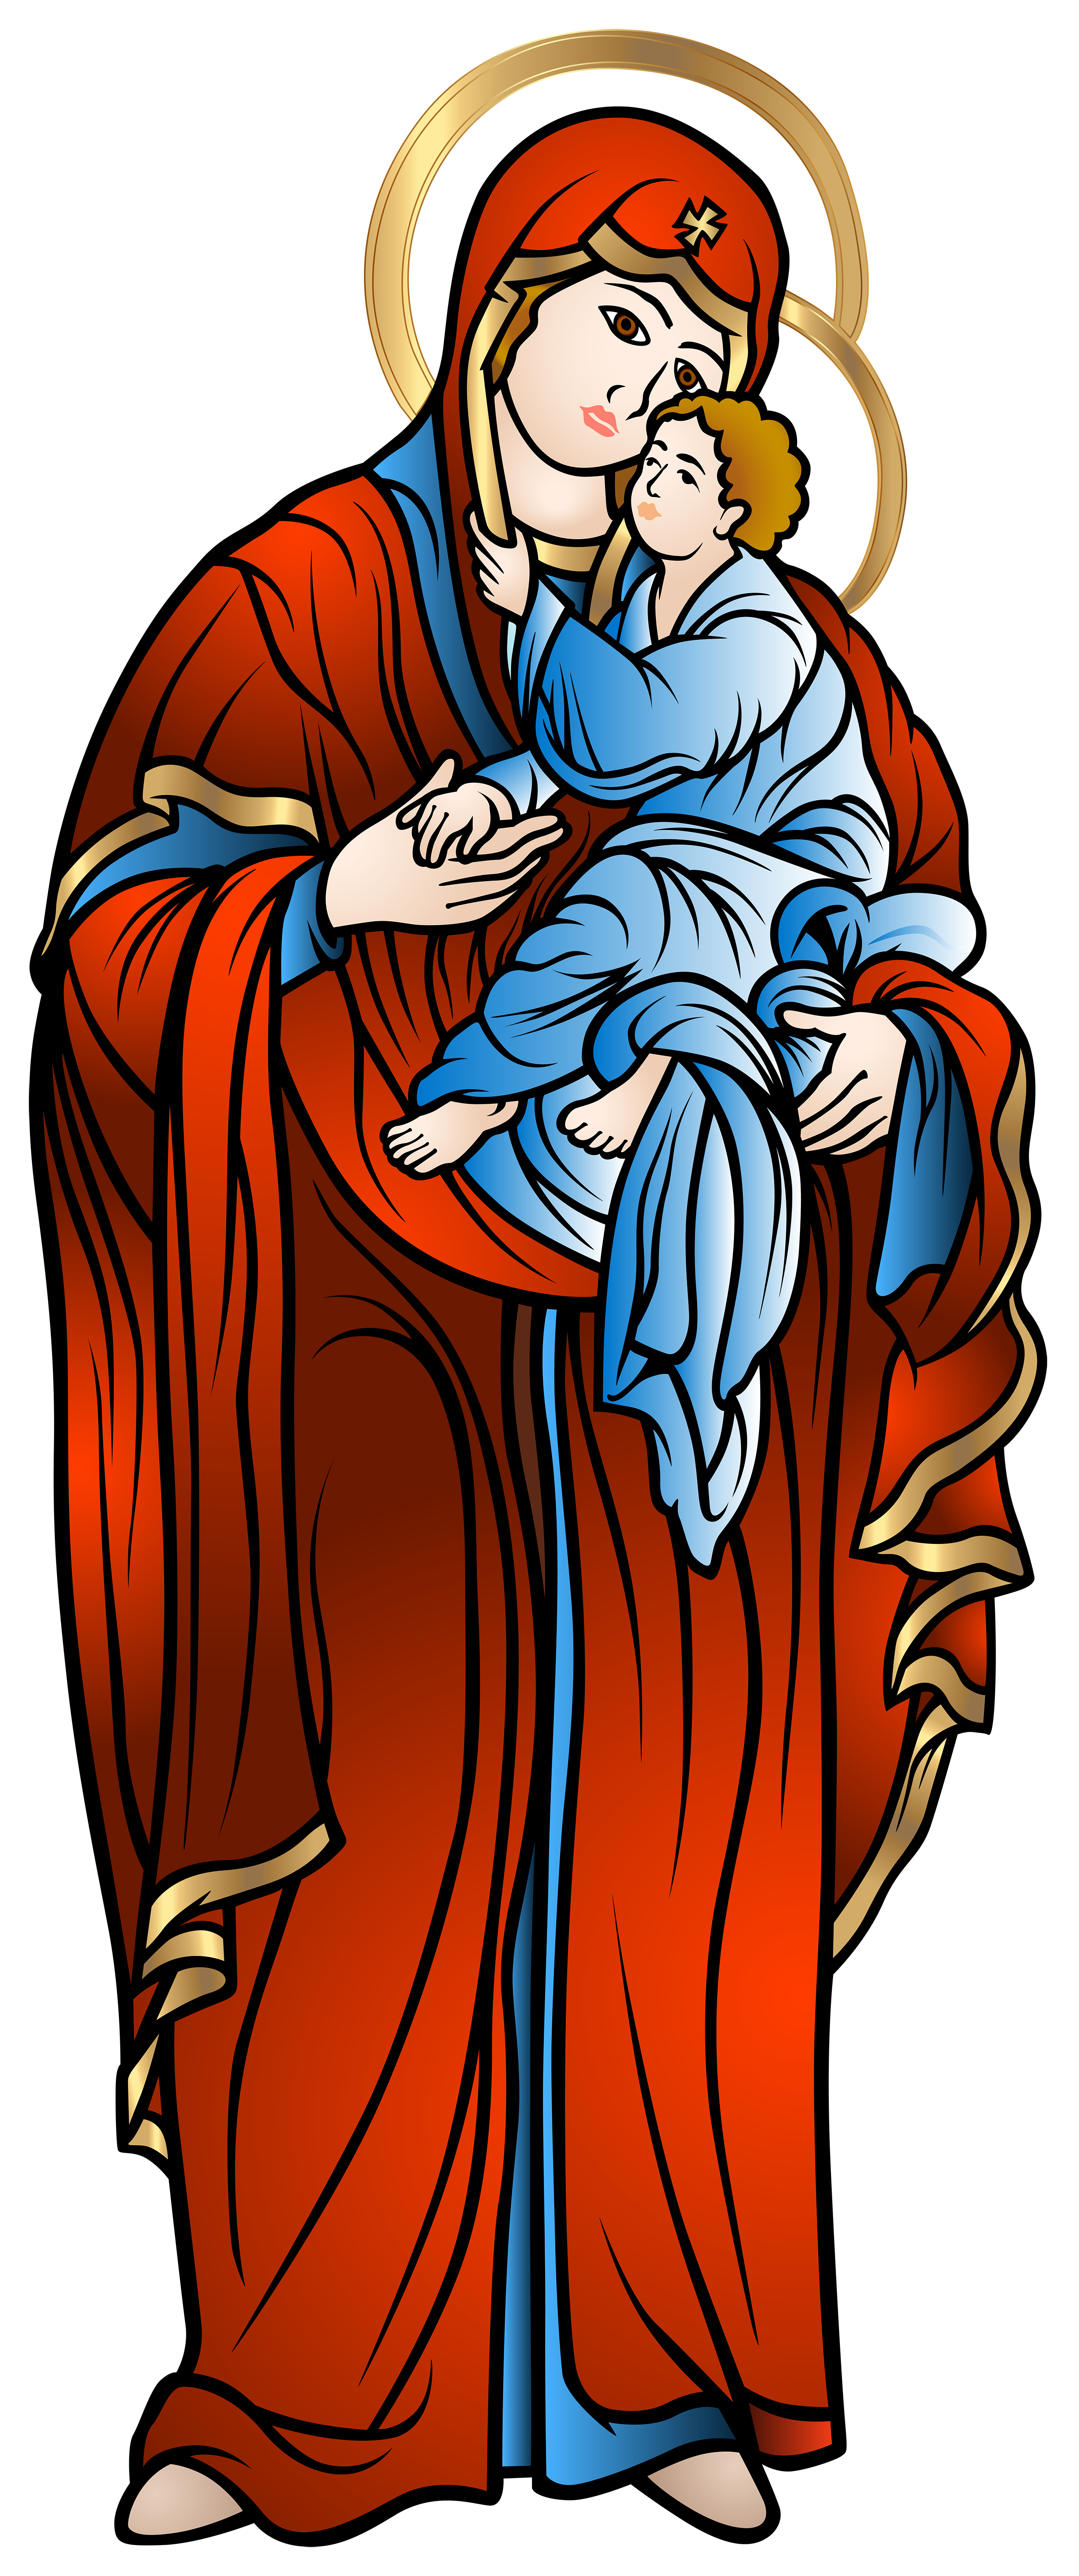 House clipart baby. Blessed virgin mary with